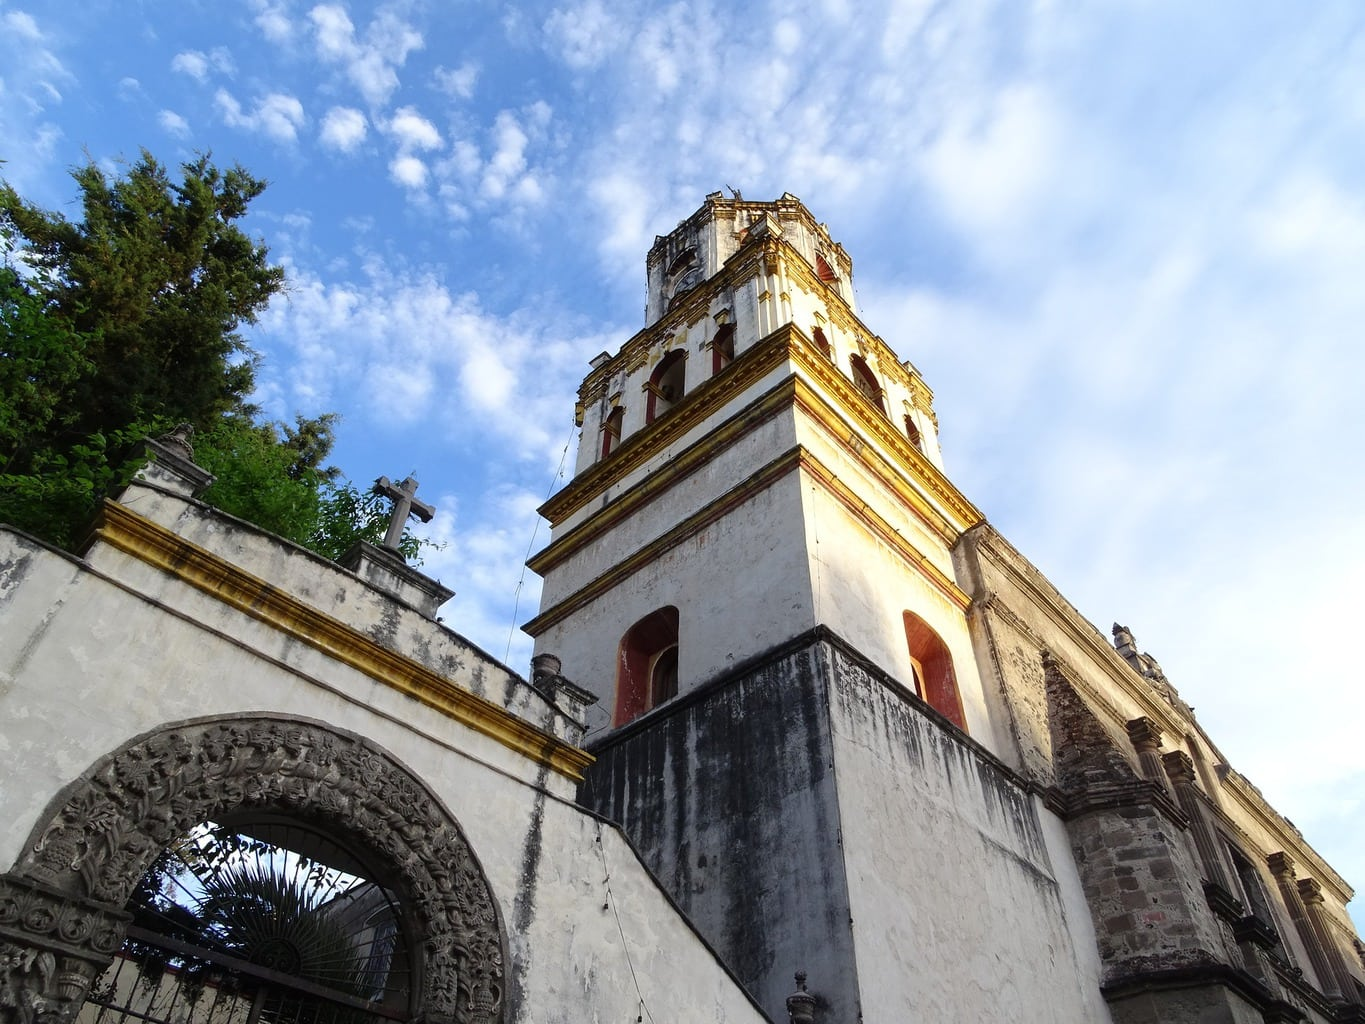 The church of San Juan Bautista in Coyoacan